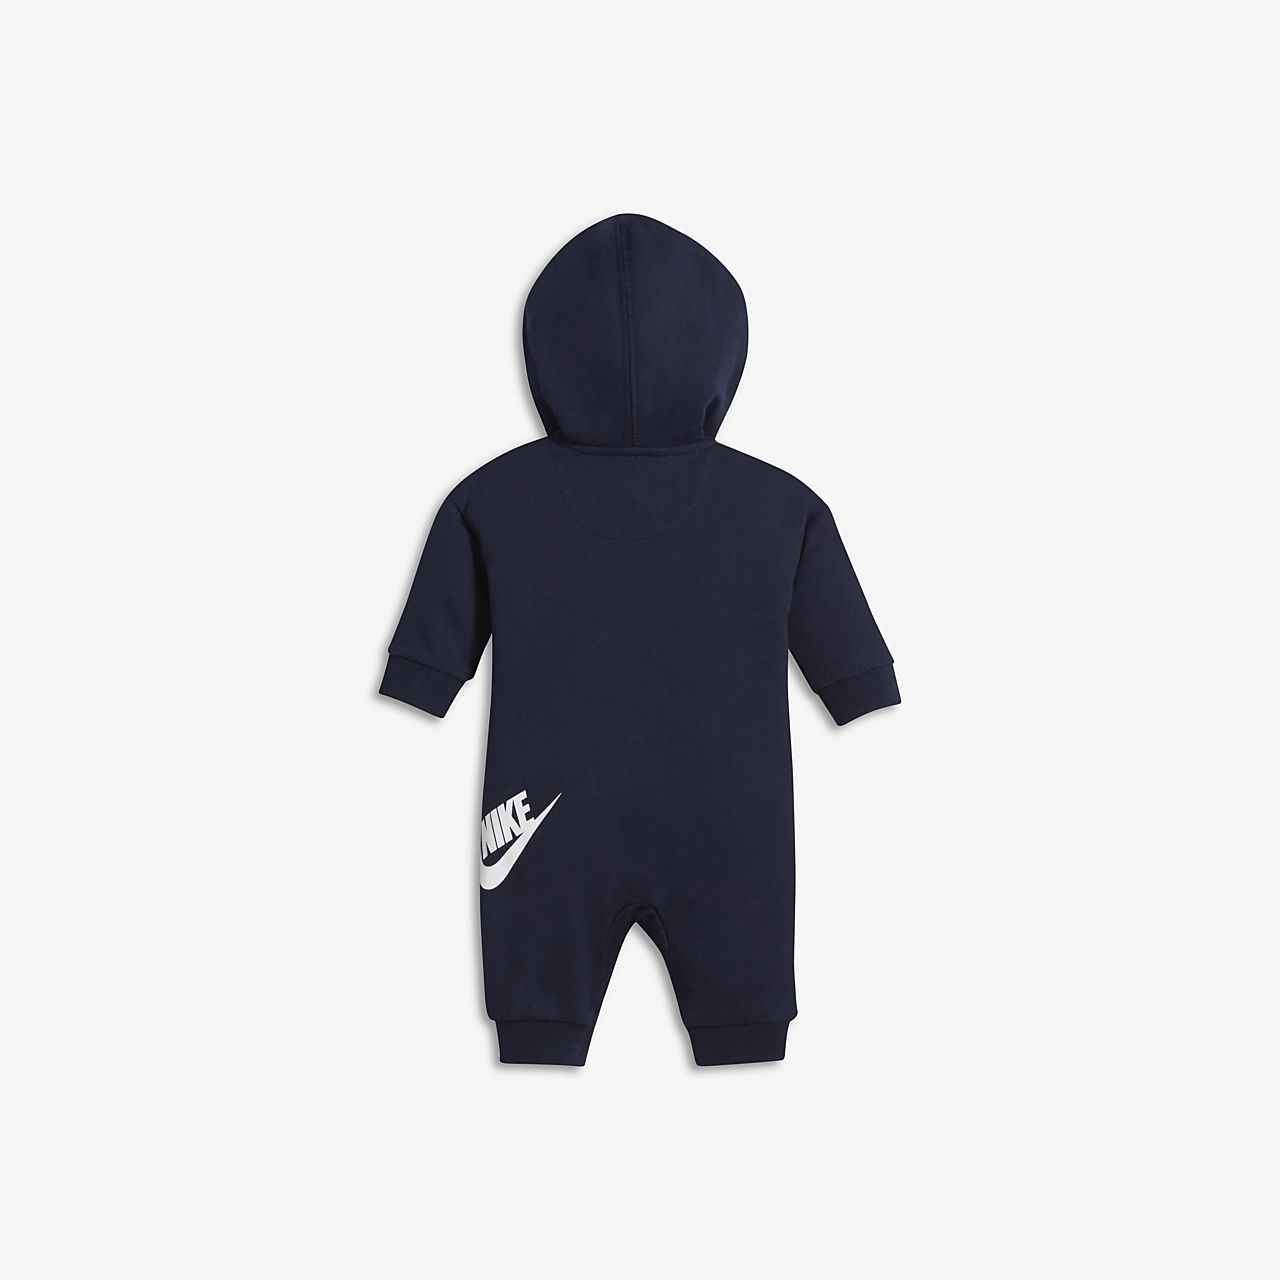 2c0696b019 Low Resolution Nike Futura Infant Coverall Nike Futura Infant Coverall